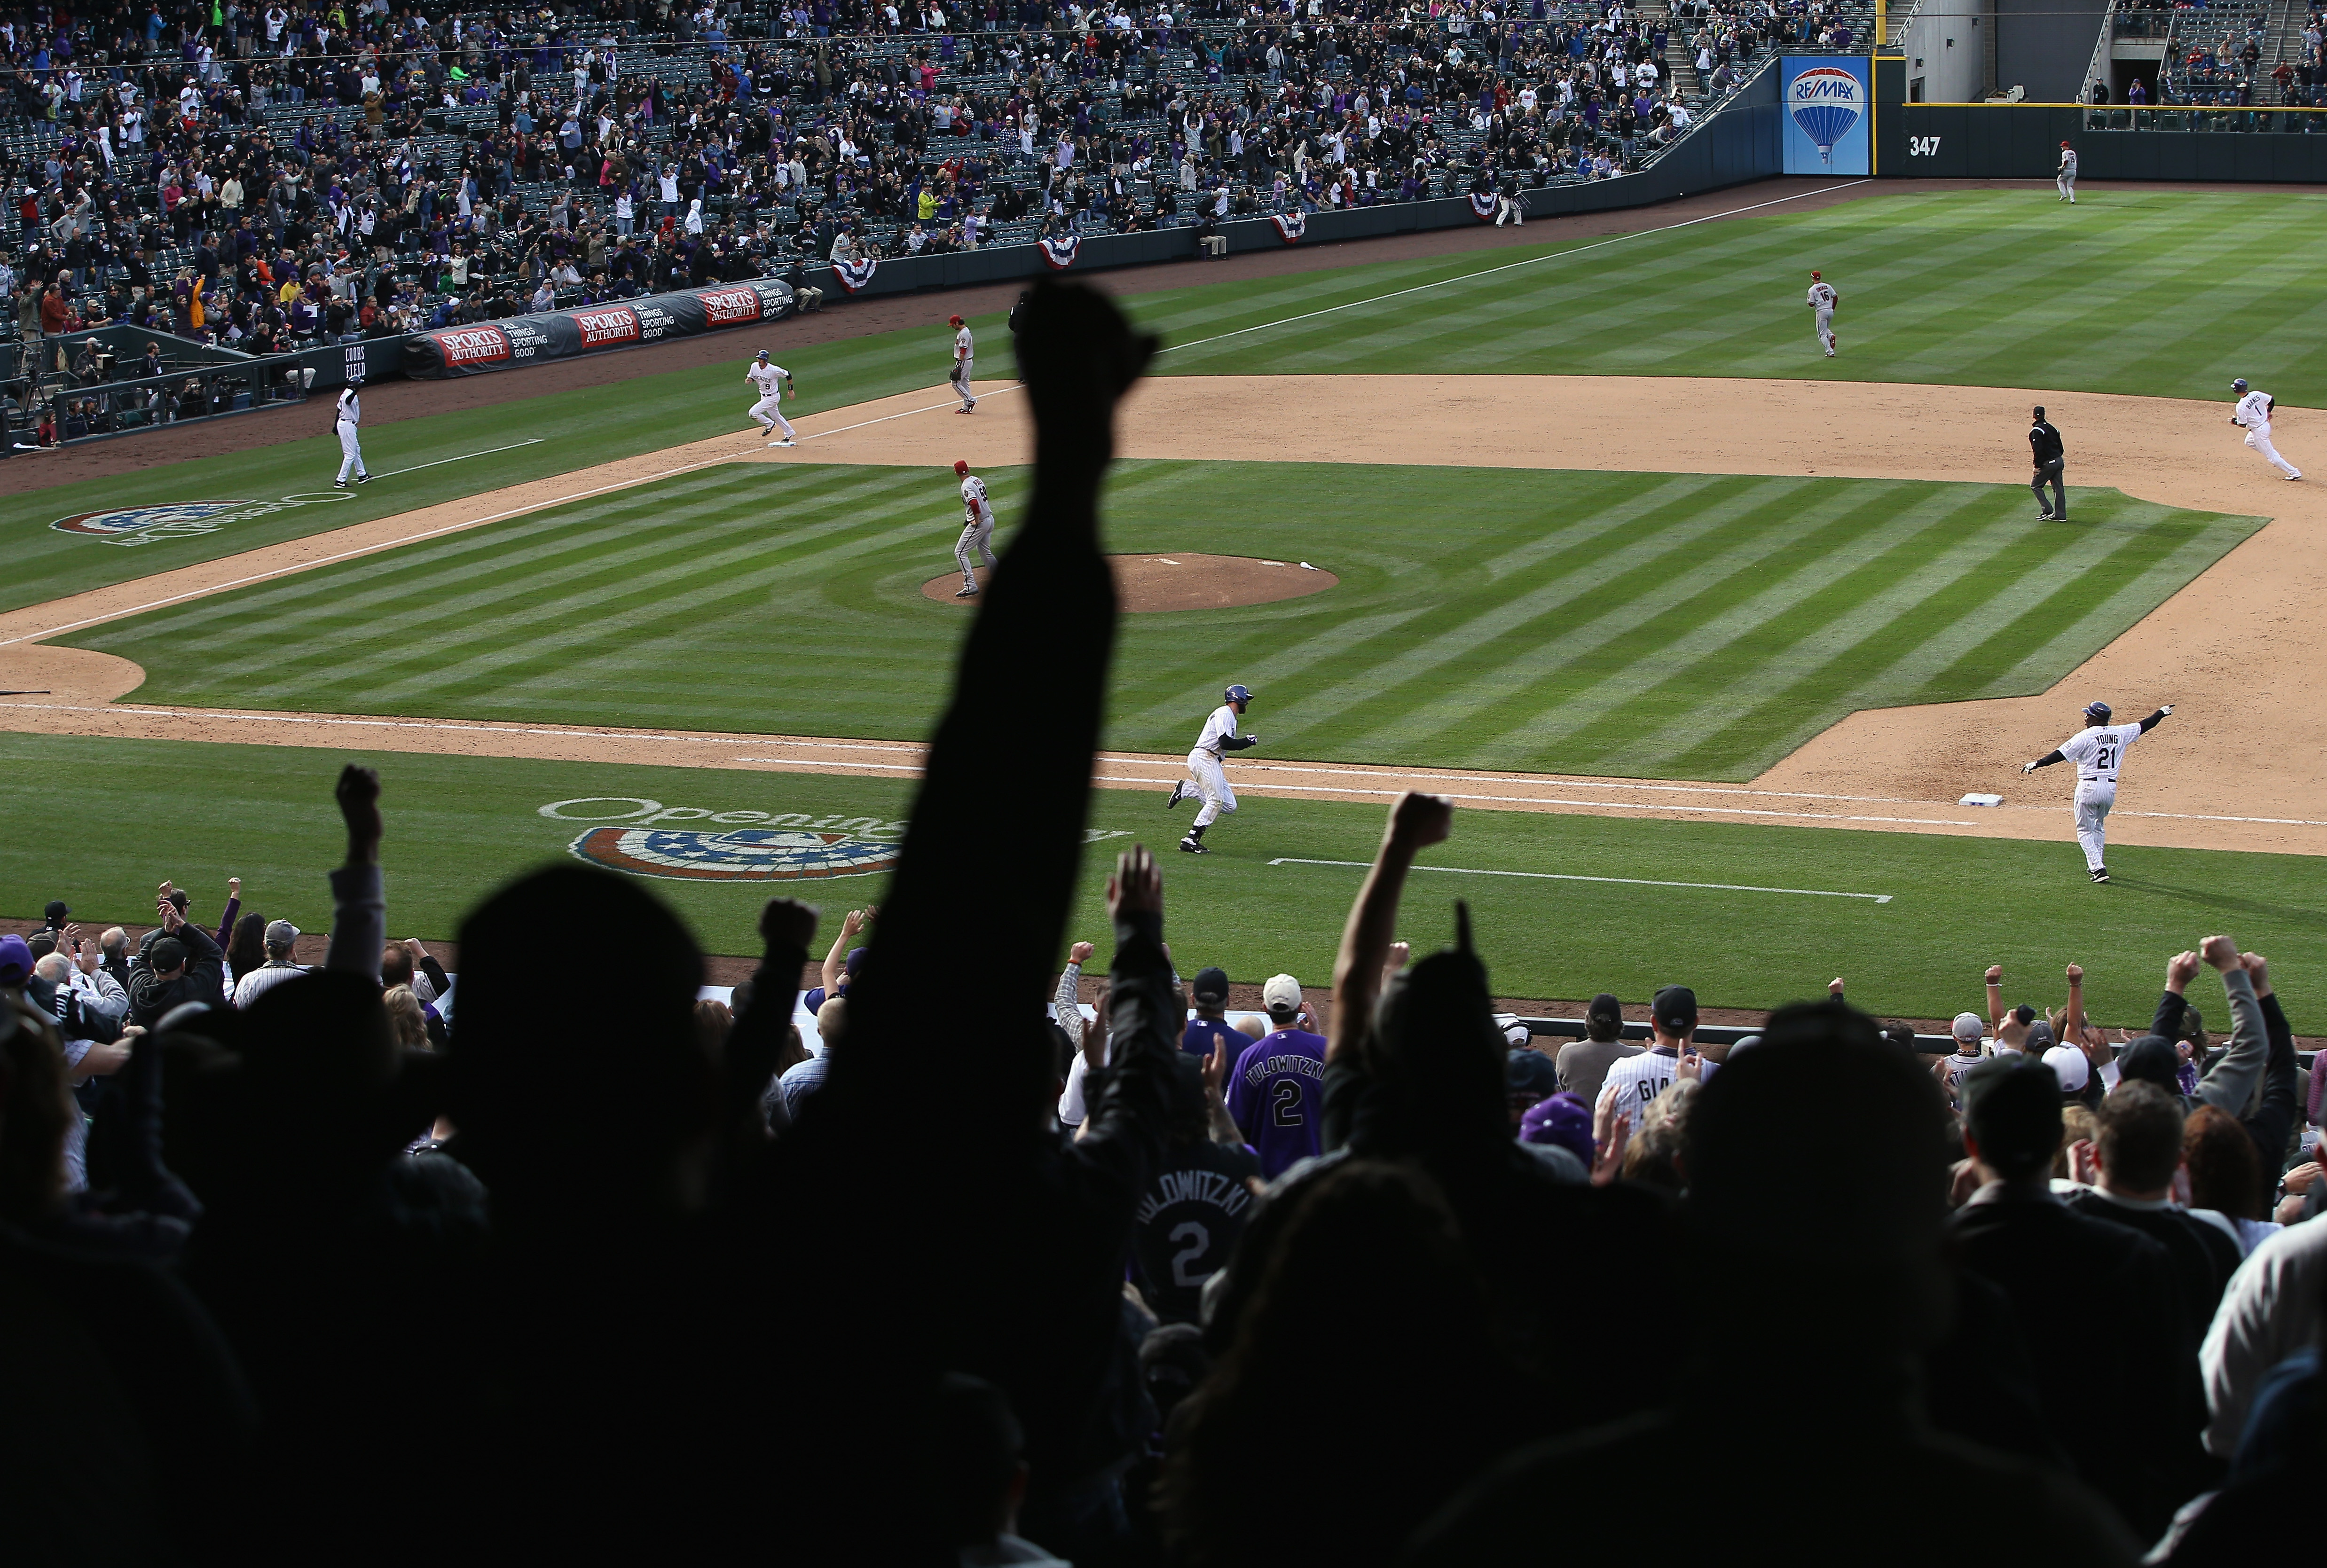 A look at the Rockies' 2020 regular season schedule - Purple Row